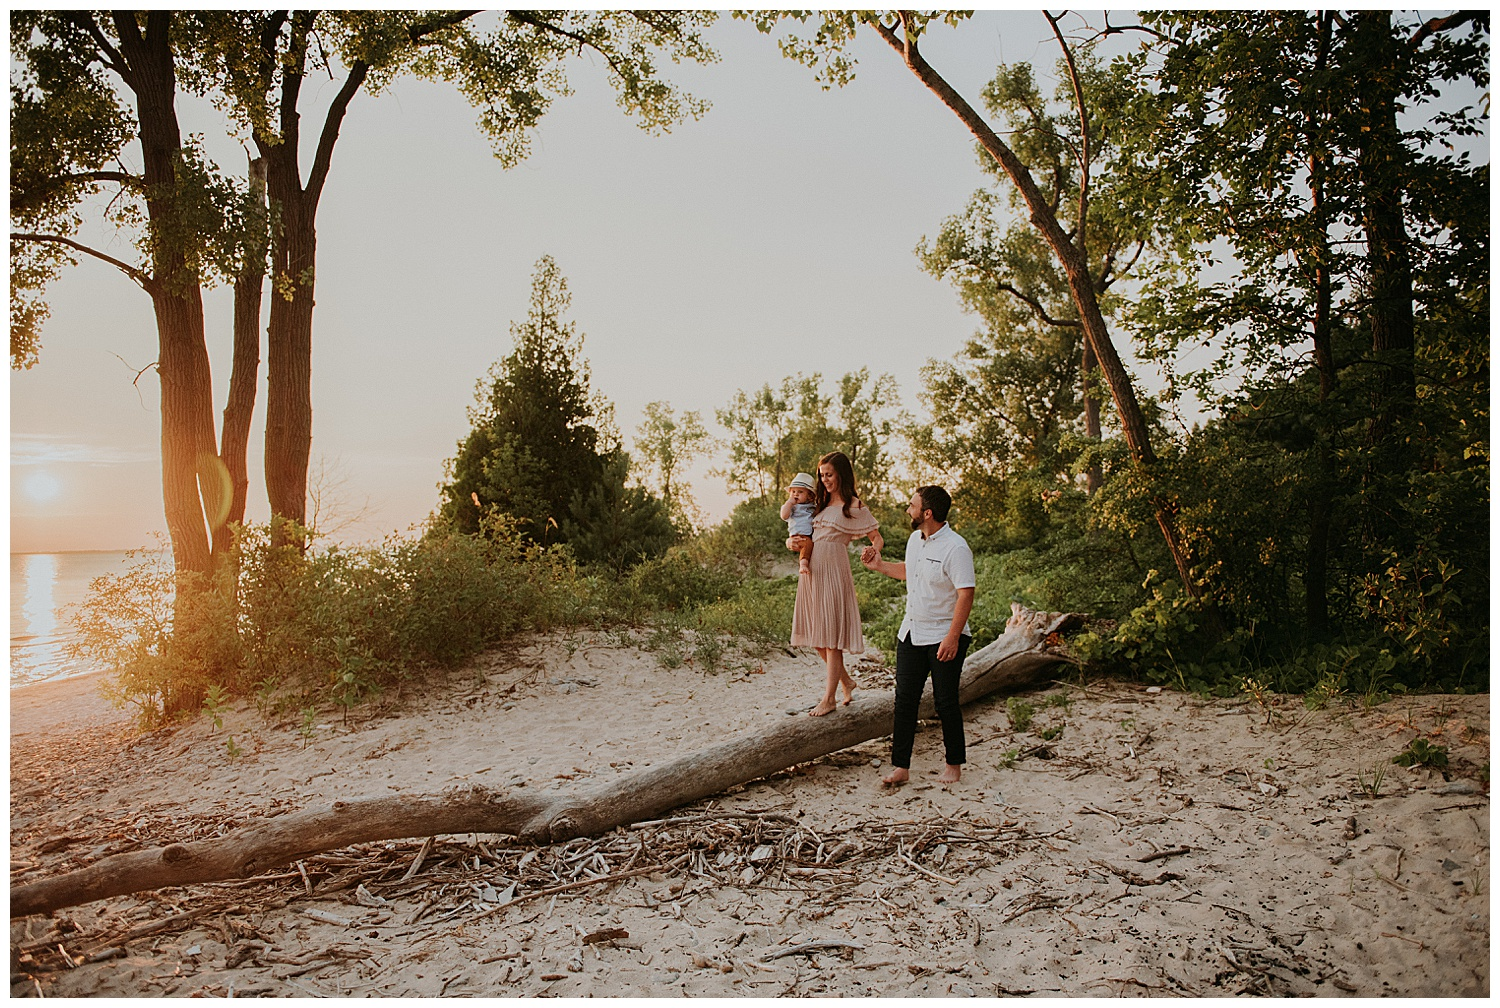 Holly McMurter Photographs | Prince Edward County Sunflower Family Session_0039.jpg